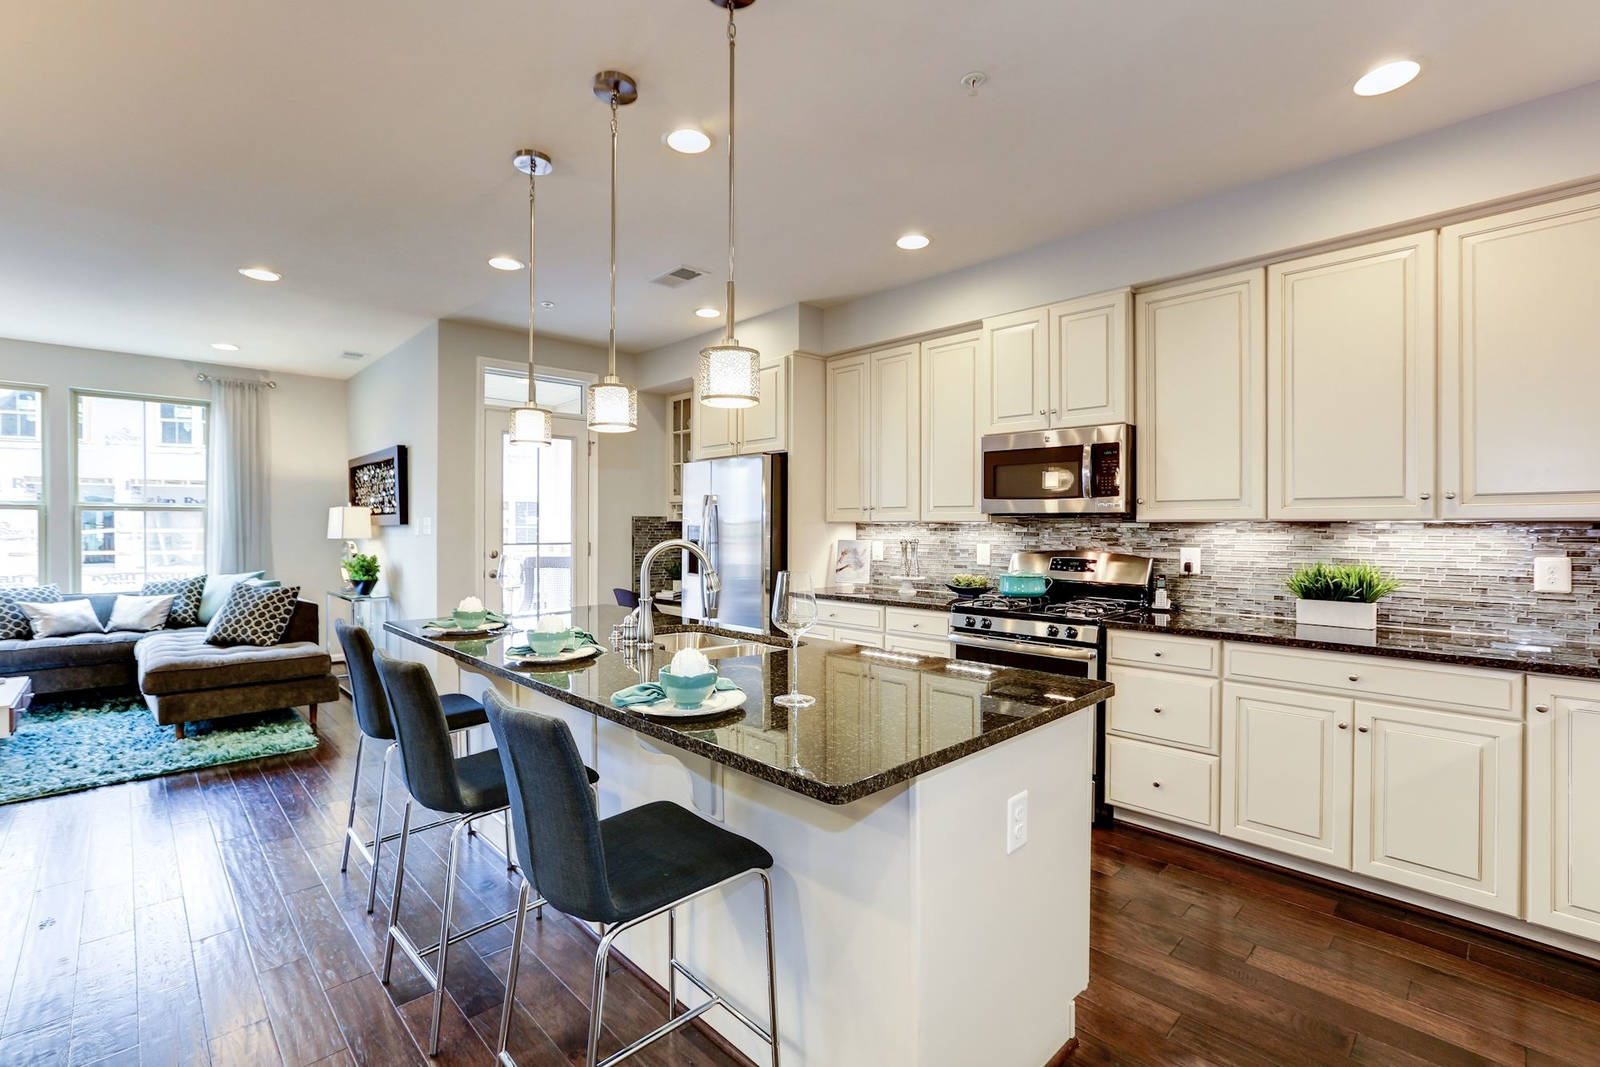 We Have The Lowest Prices For The Most Space And We Will Guide You Through  The